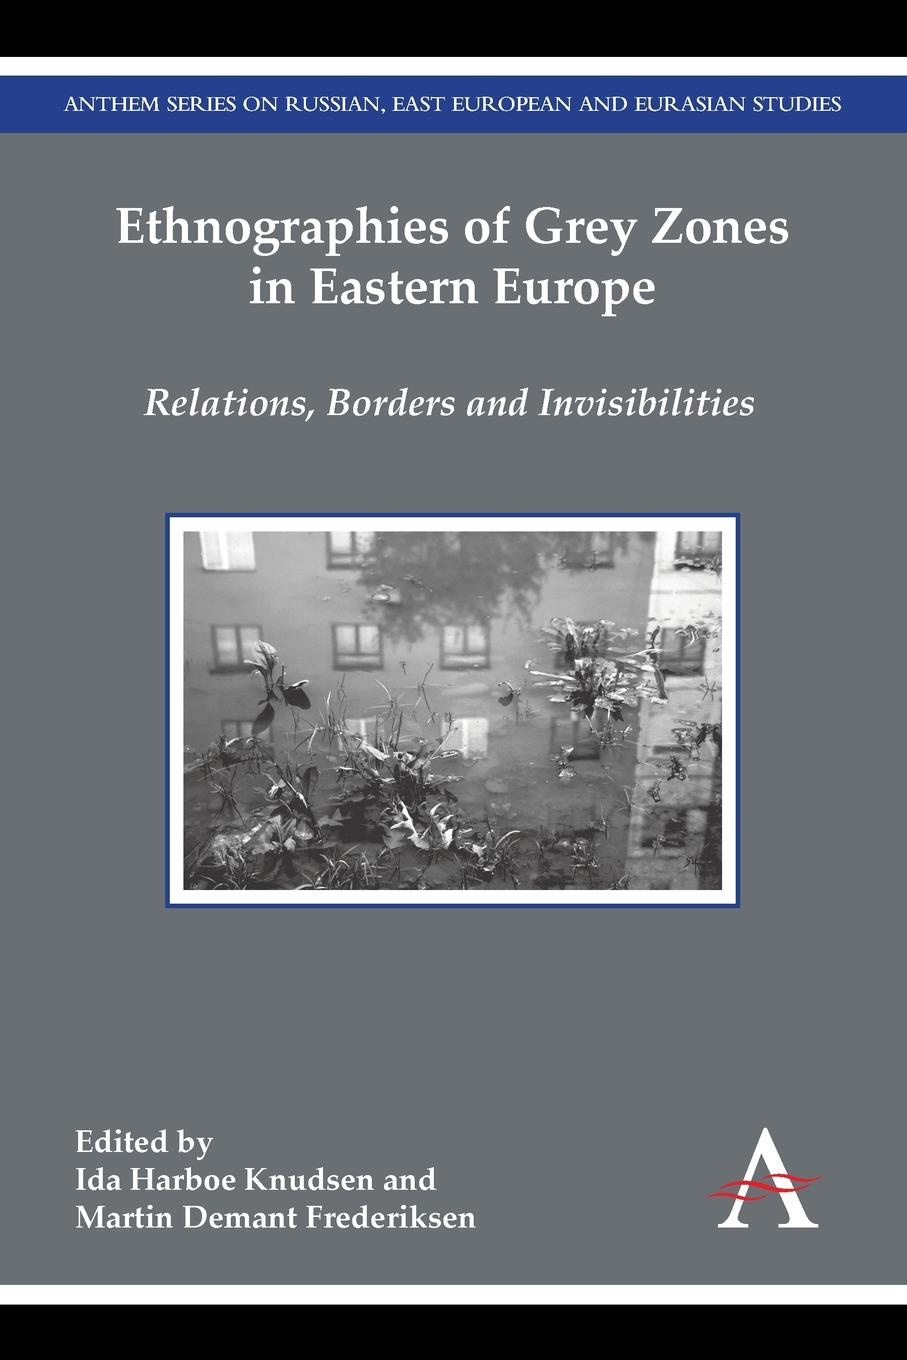 Ethnographies of Grey Zones in Eastern Europe. Relations, Borders and Invisibilities gender in twentieth century eastern europe and the ussr